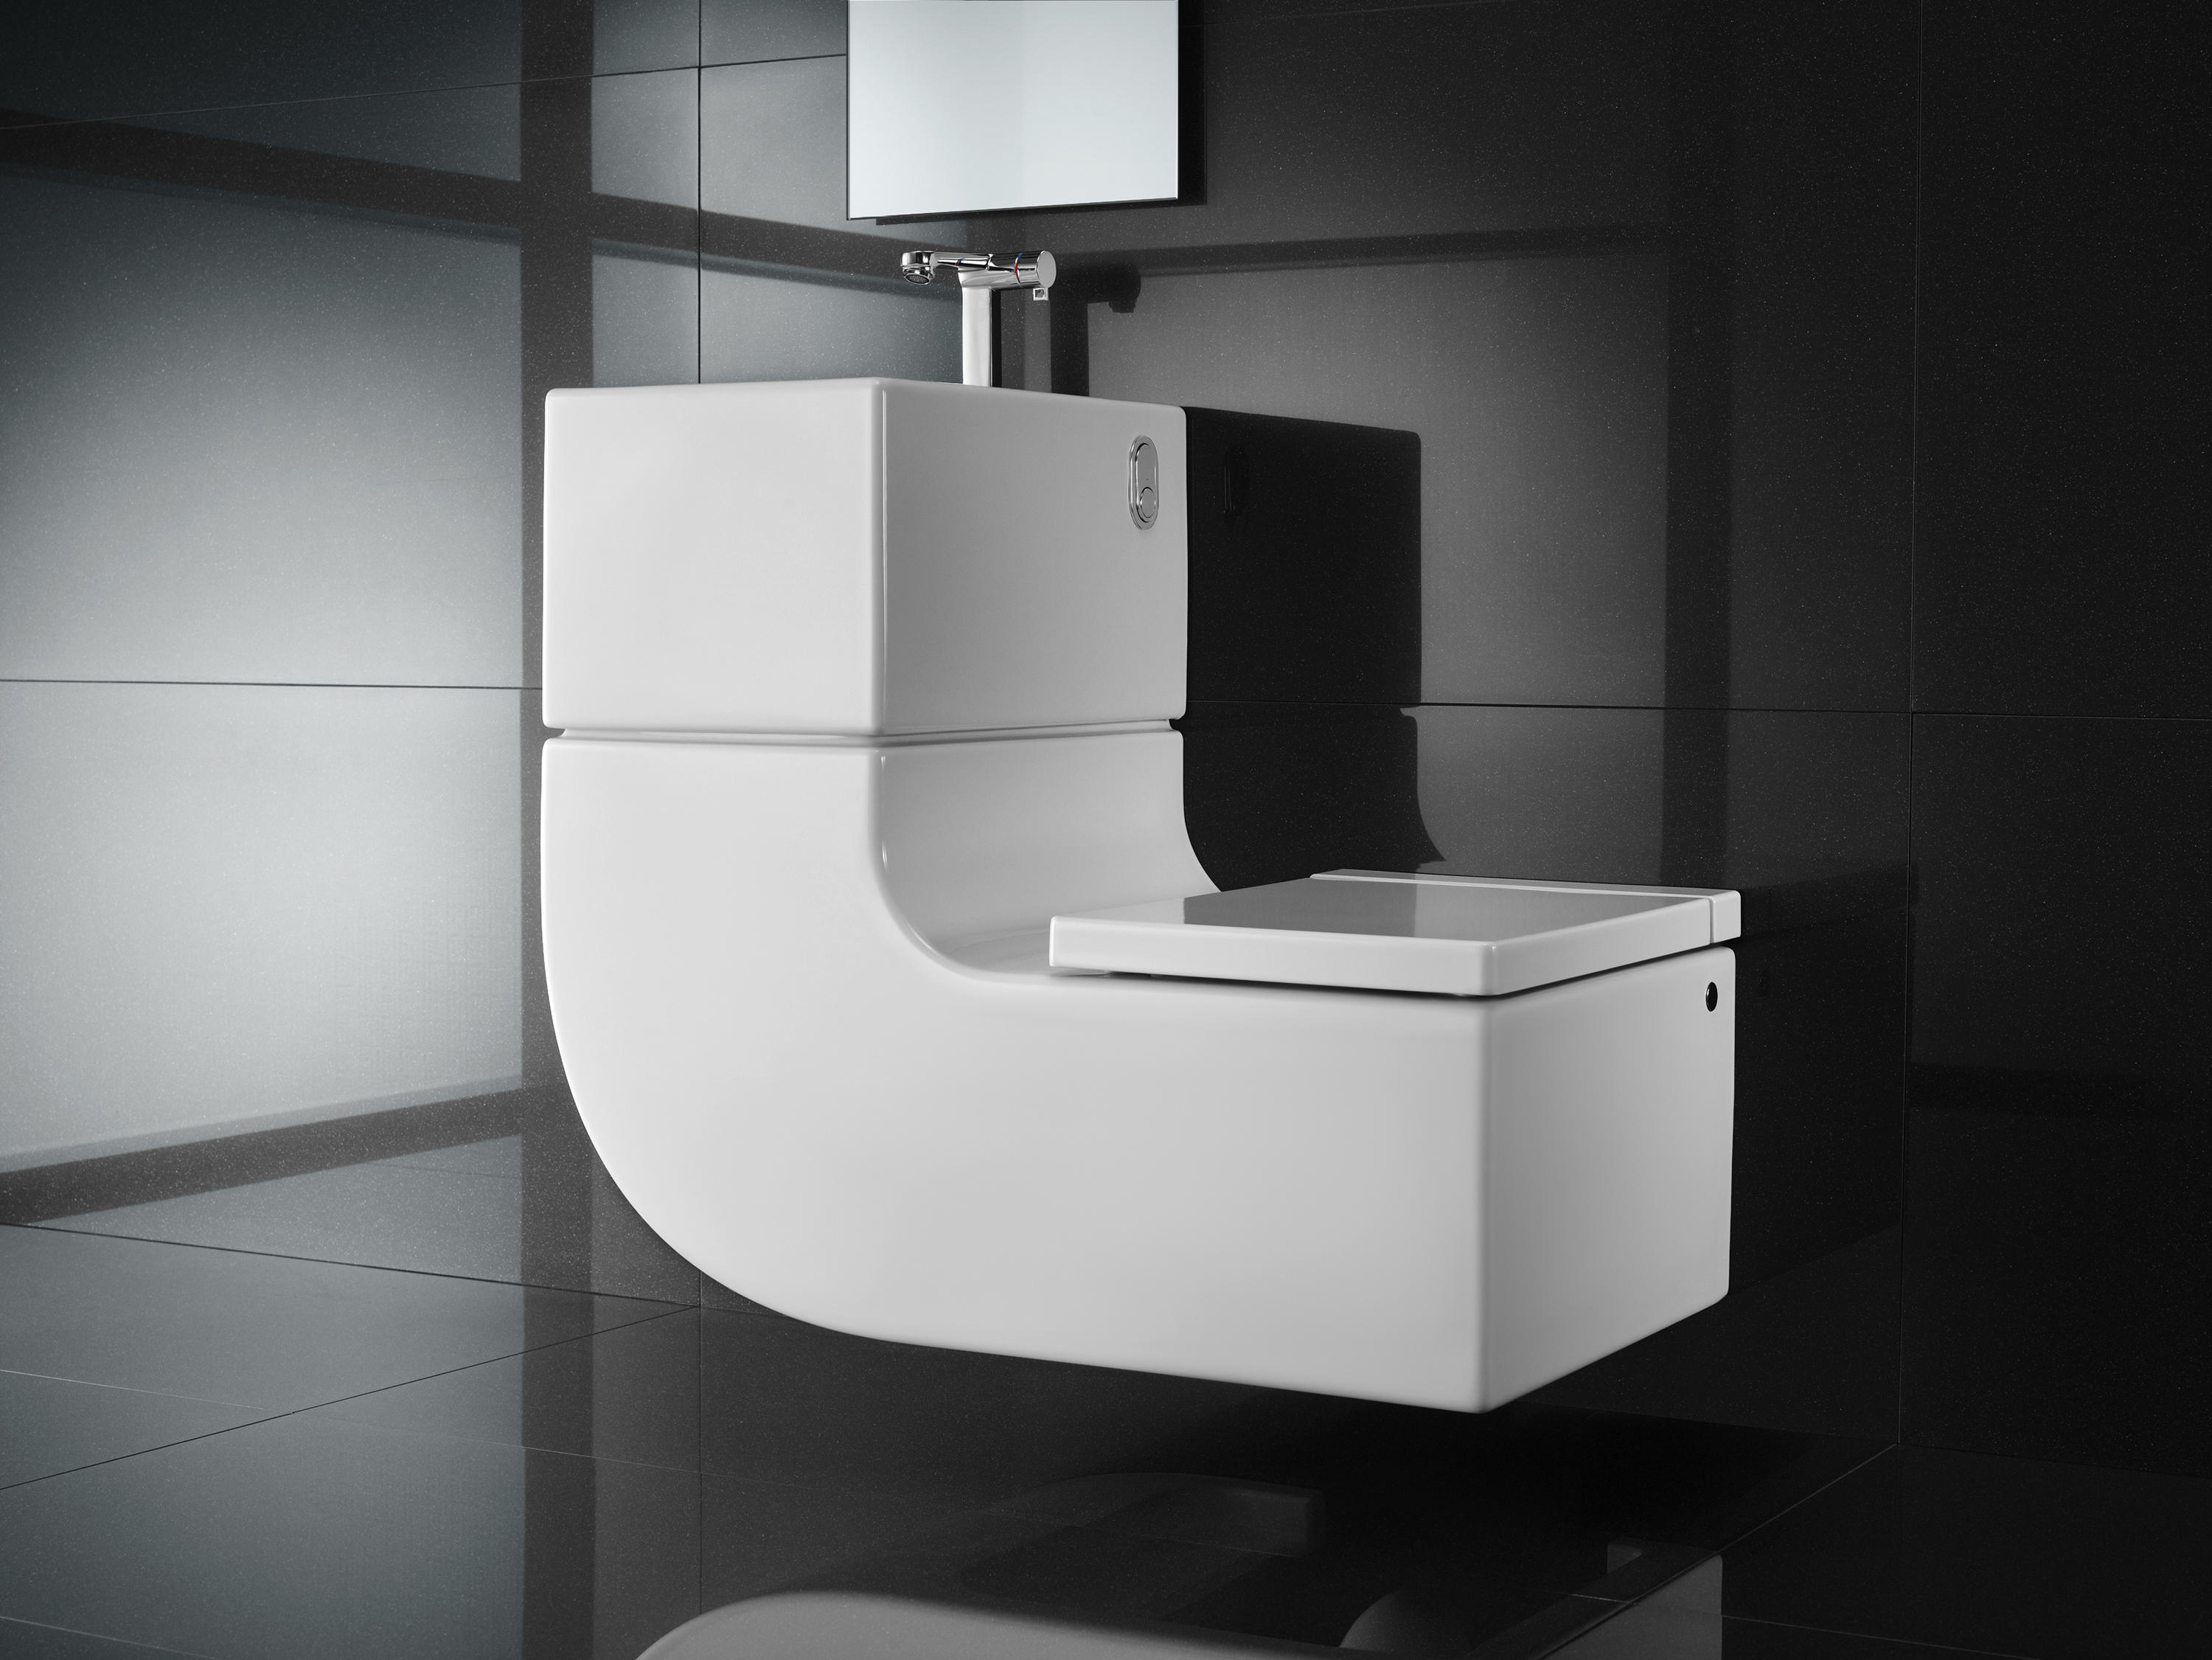 Design Wc W 43w Washbasin 43 Wc Toilets From Roca Architonic